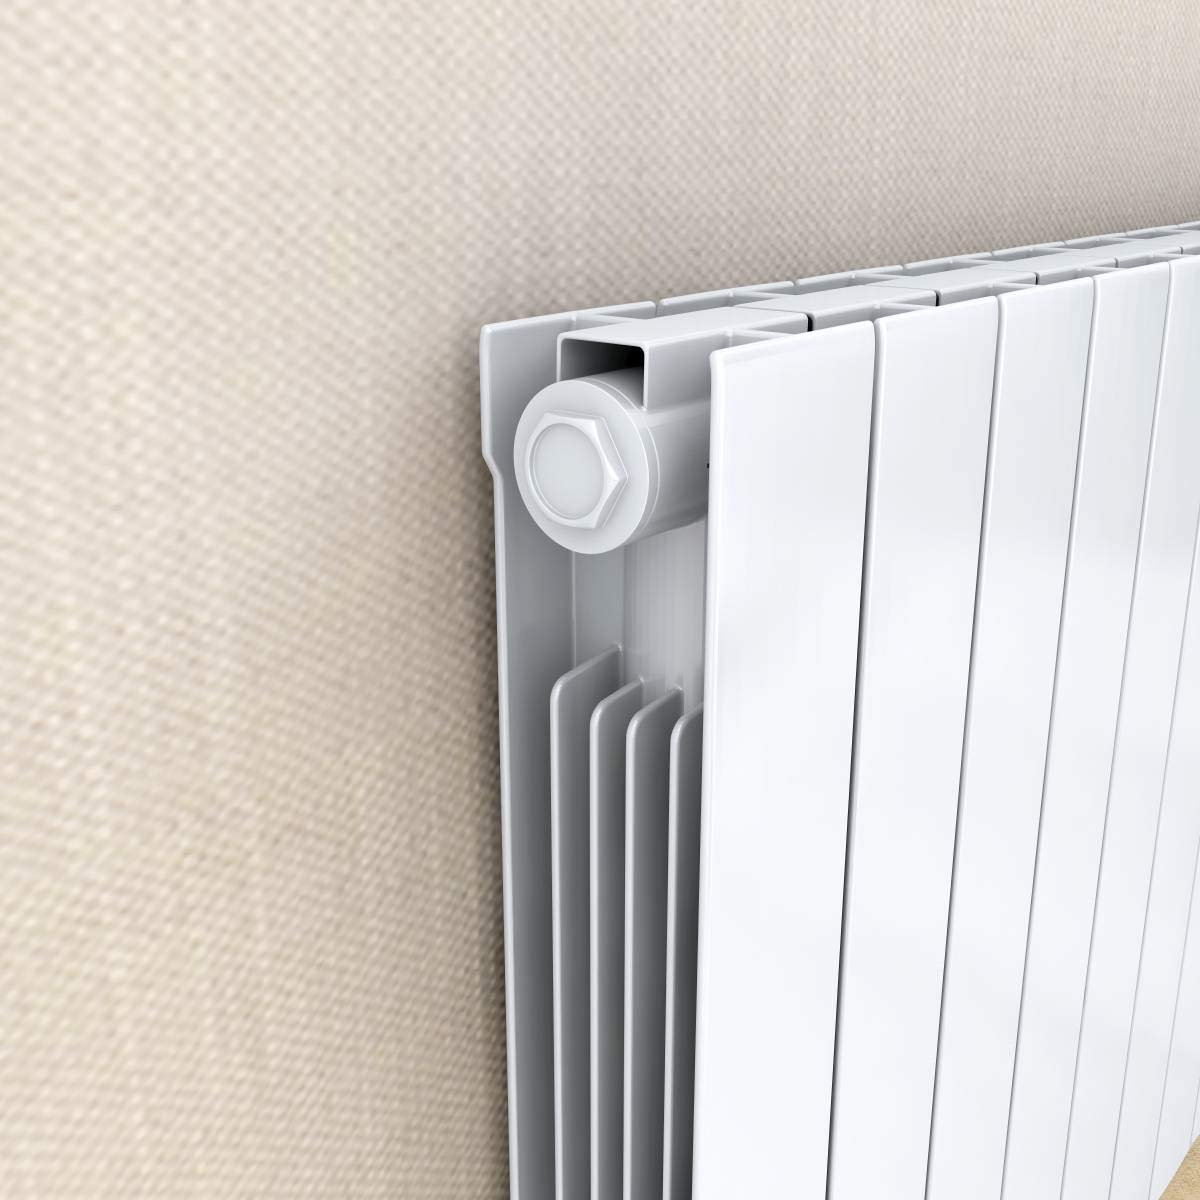 Slimline Fluid Inertia Radiator LCD Display 24//7 Timer 577x461mm Oil Filled Electric Radiator Thermostatic Wall Mounted Heater 900W 5 Heating Modes